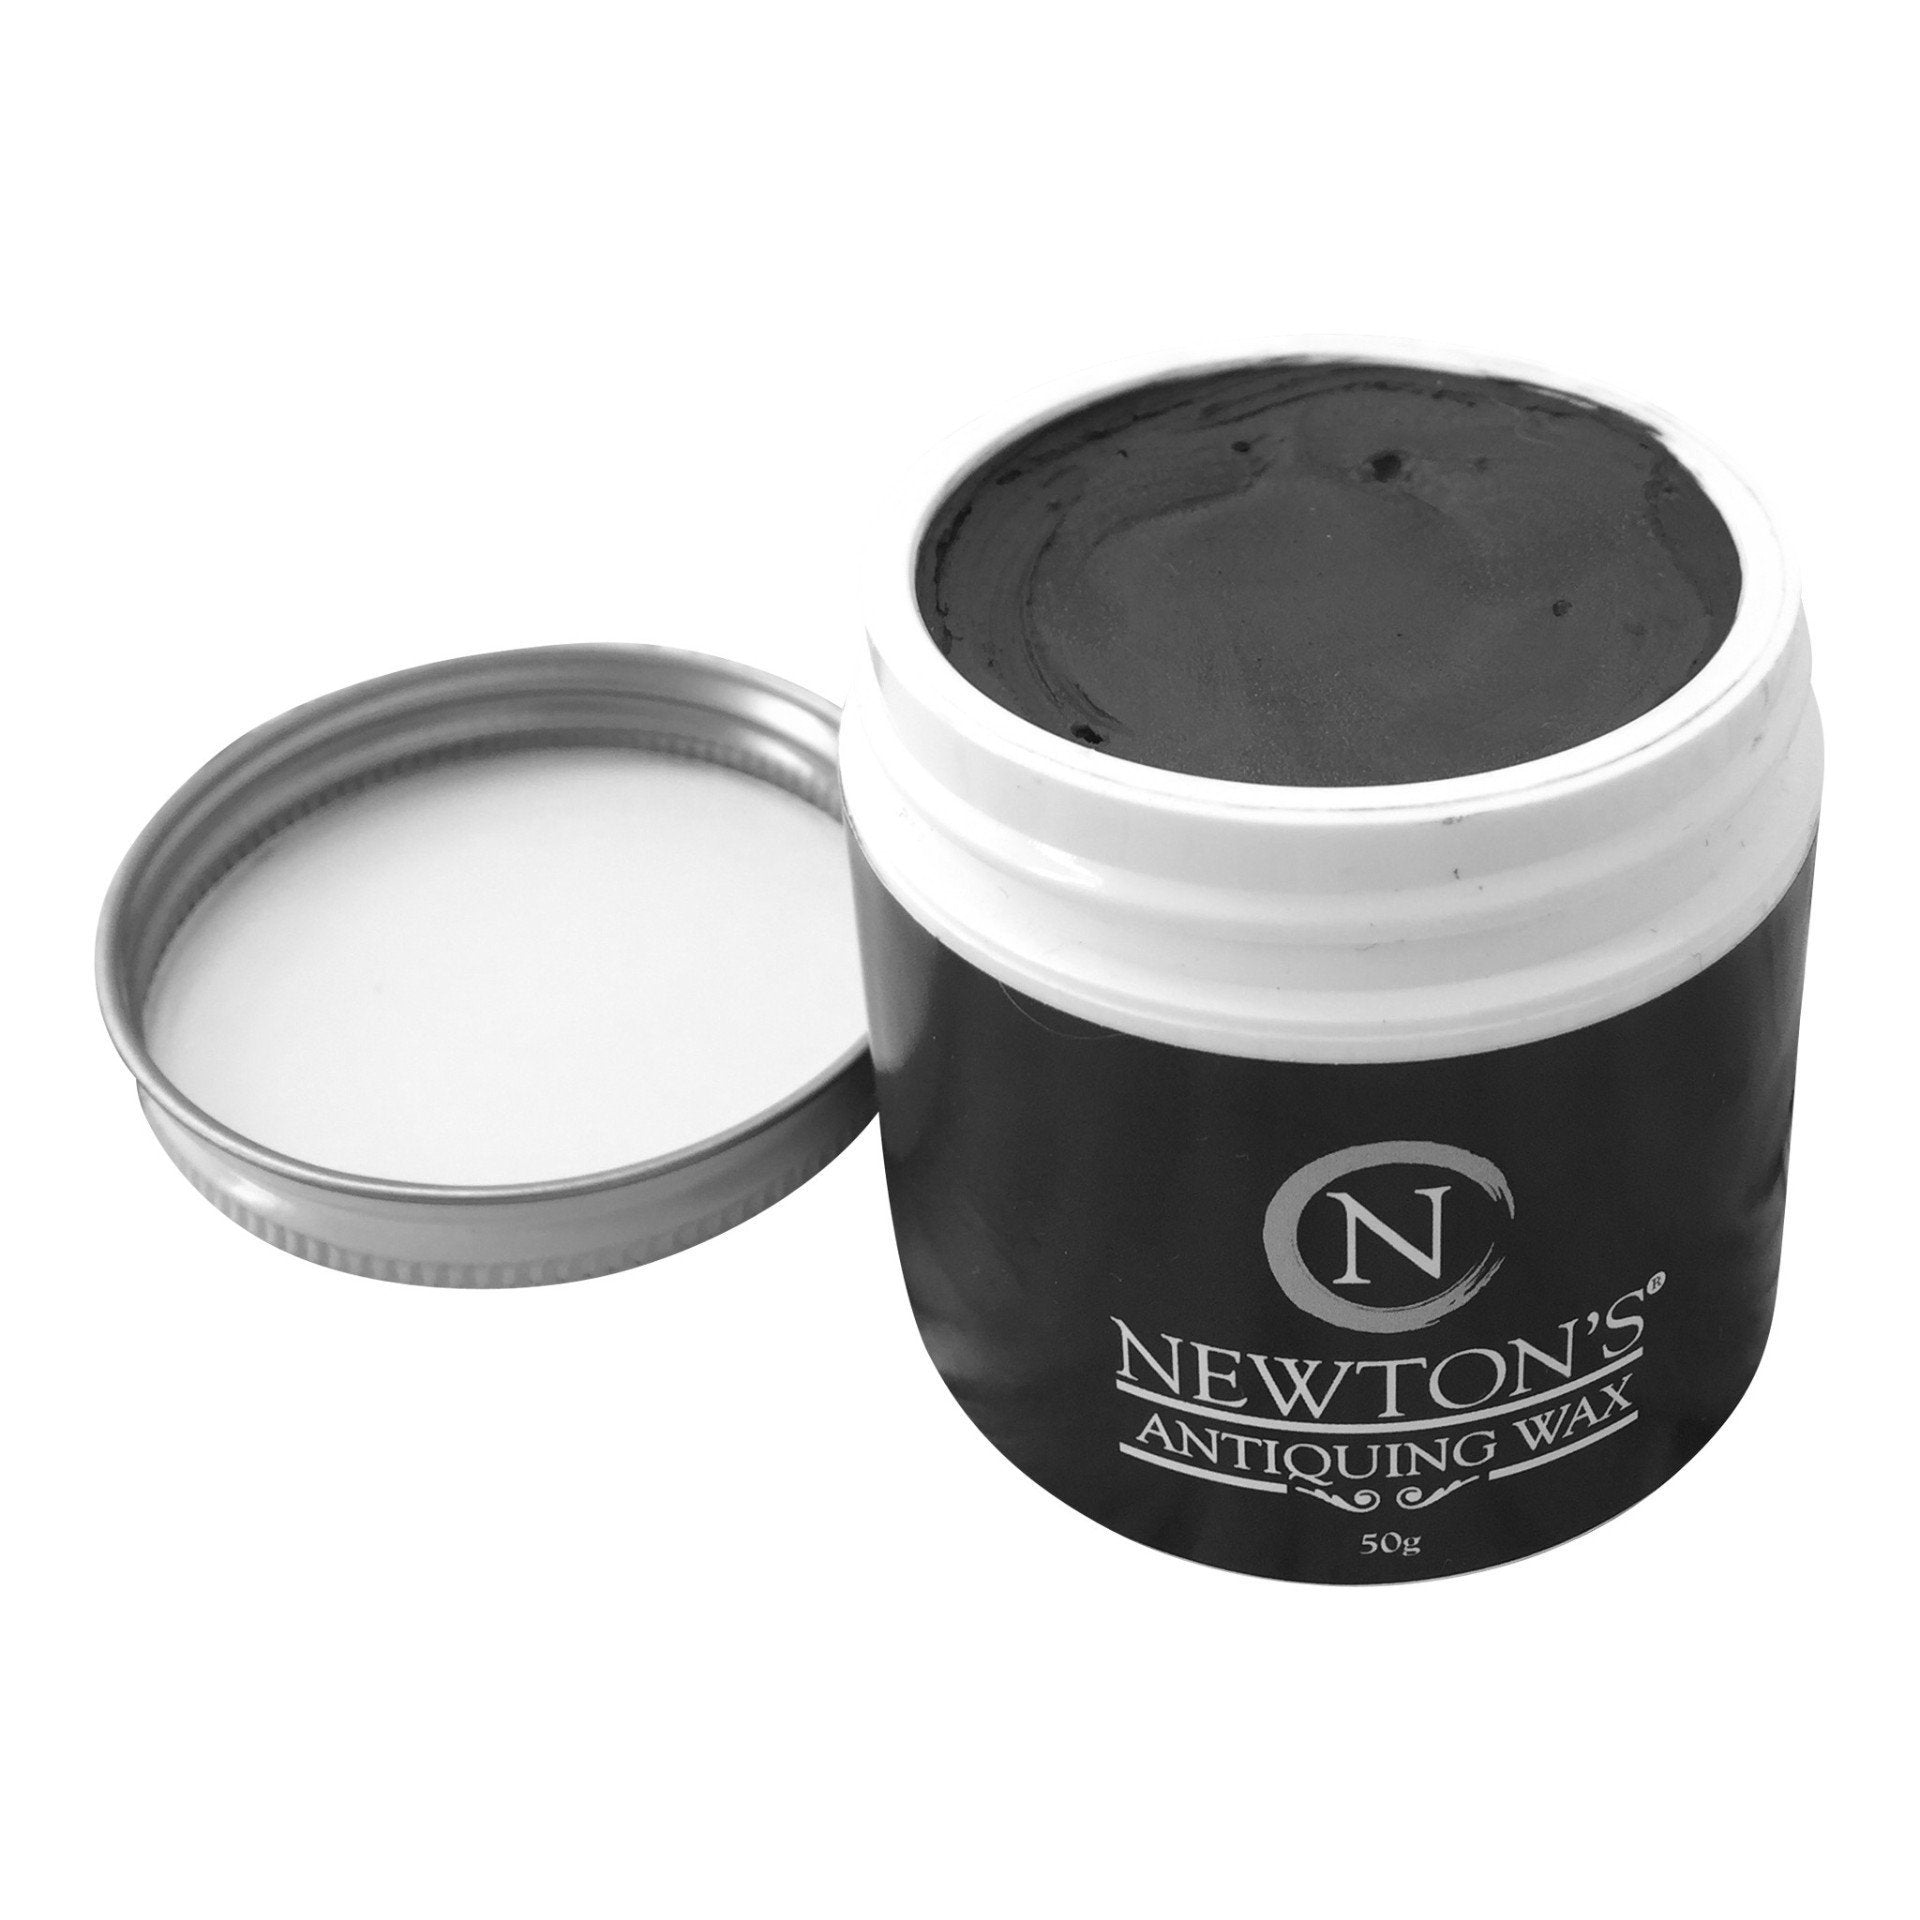 Black antiquing wax for chalk paint